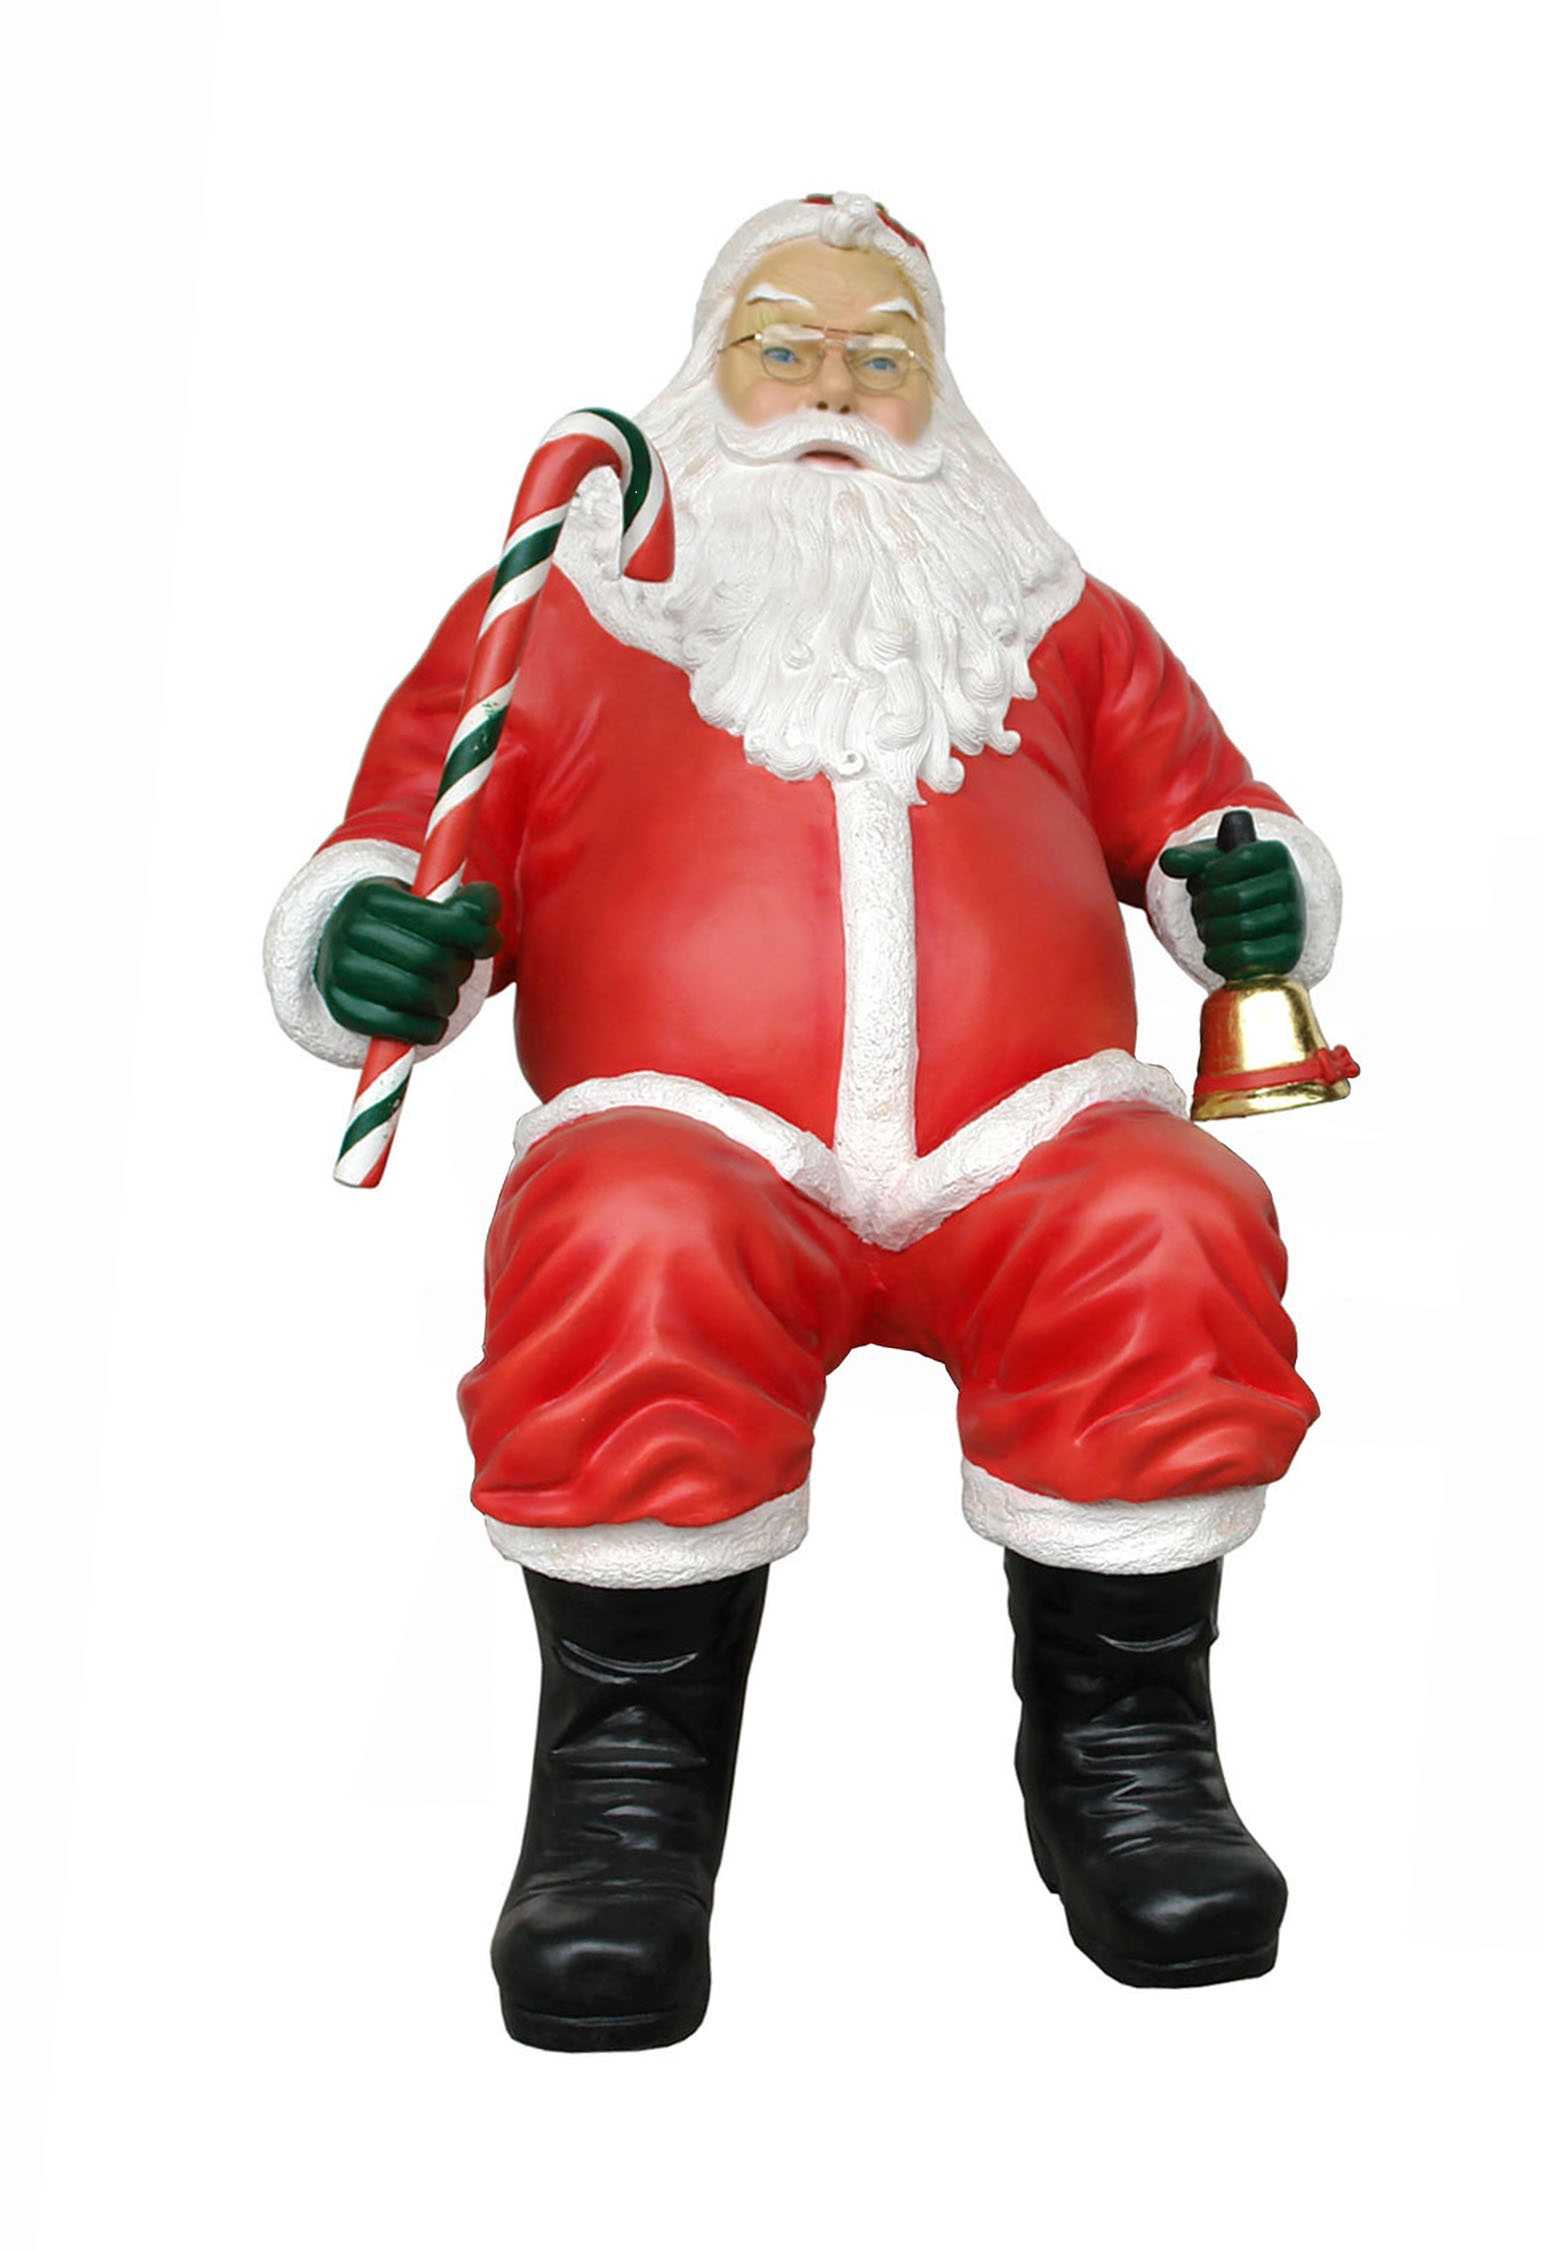 Santa Claus with Candy Cane Sitting